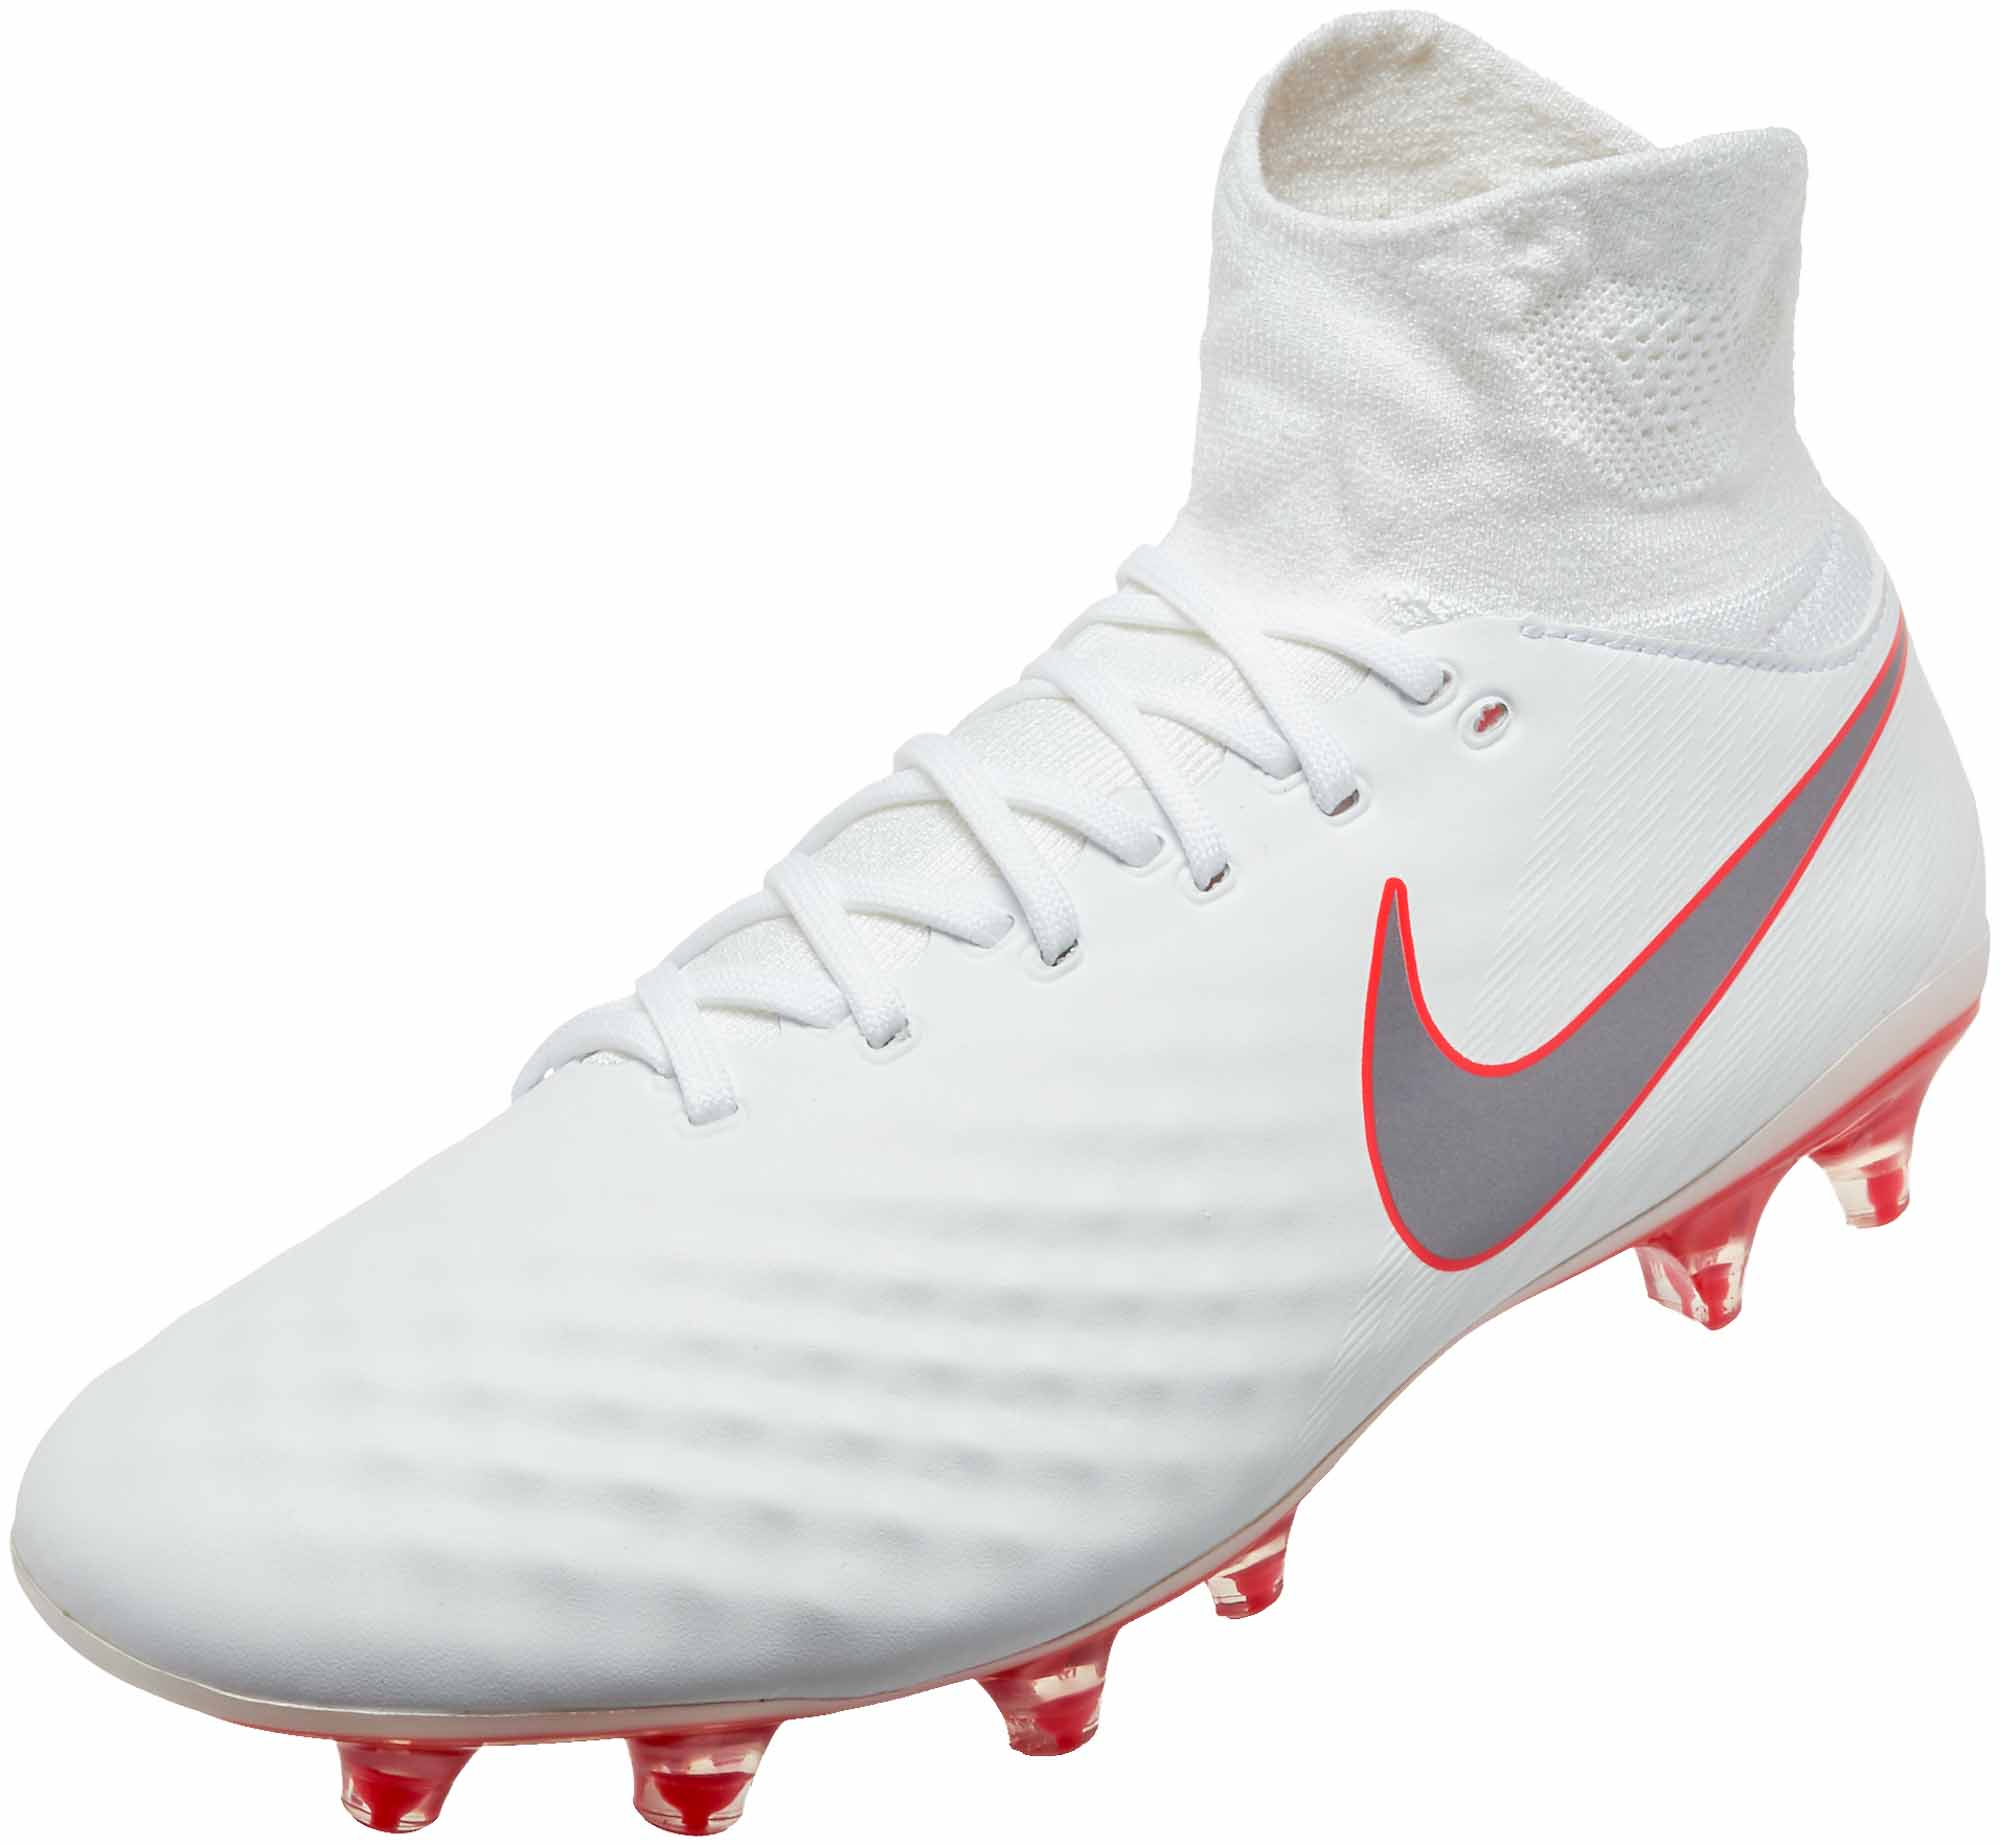 729579176410 Nike Magista Obra II Pro DF FG - White Metallic Cool Grey - SoccerPro